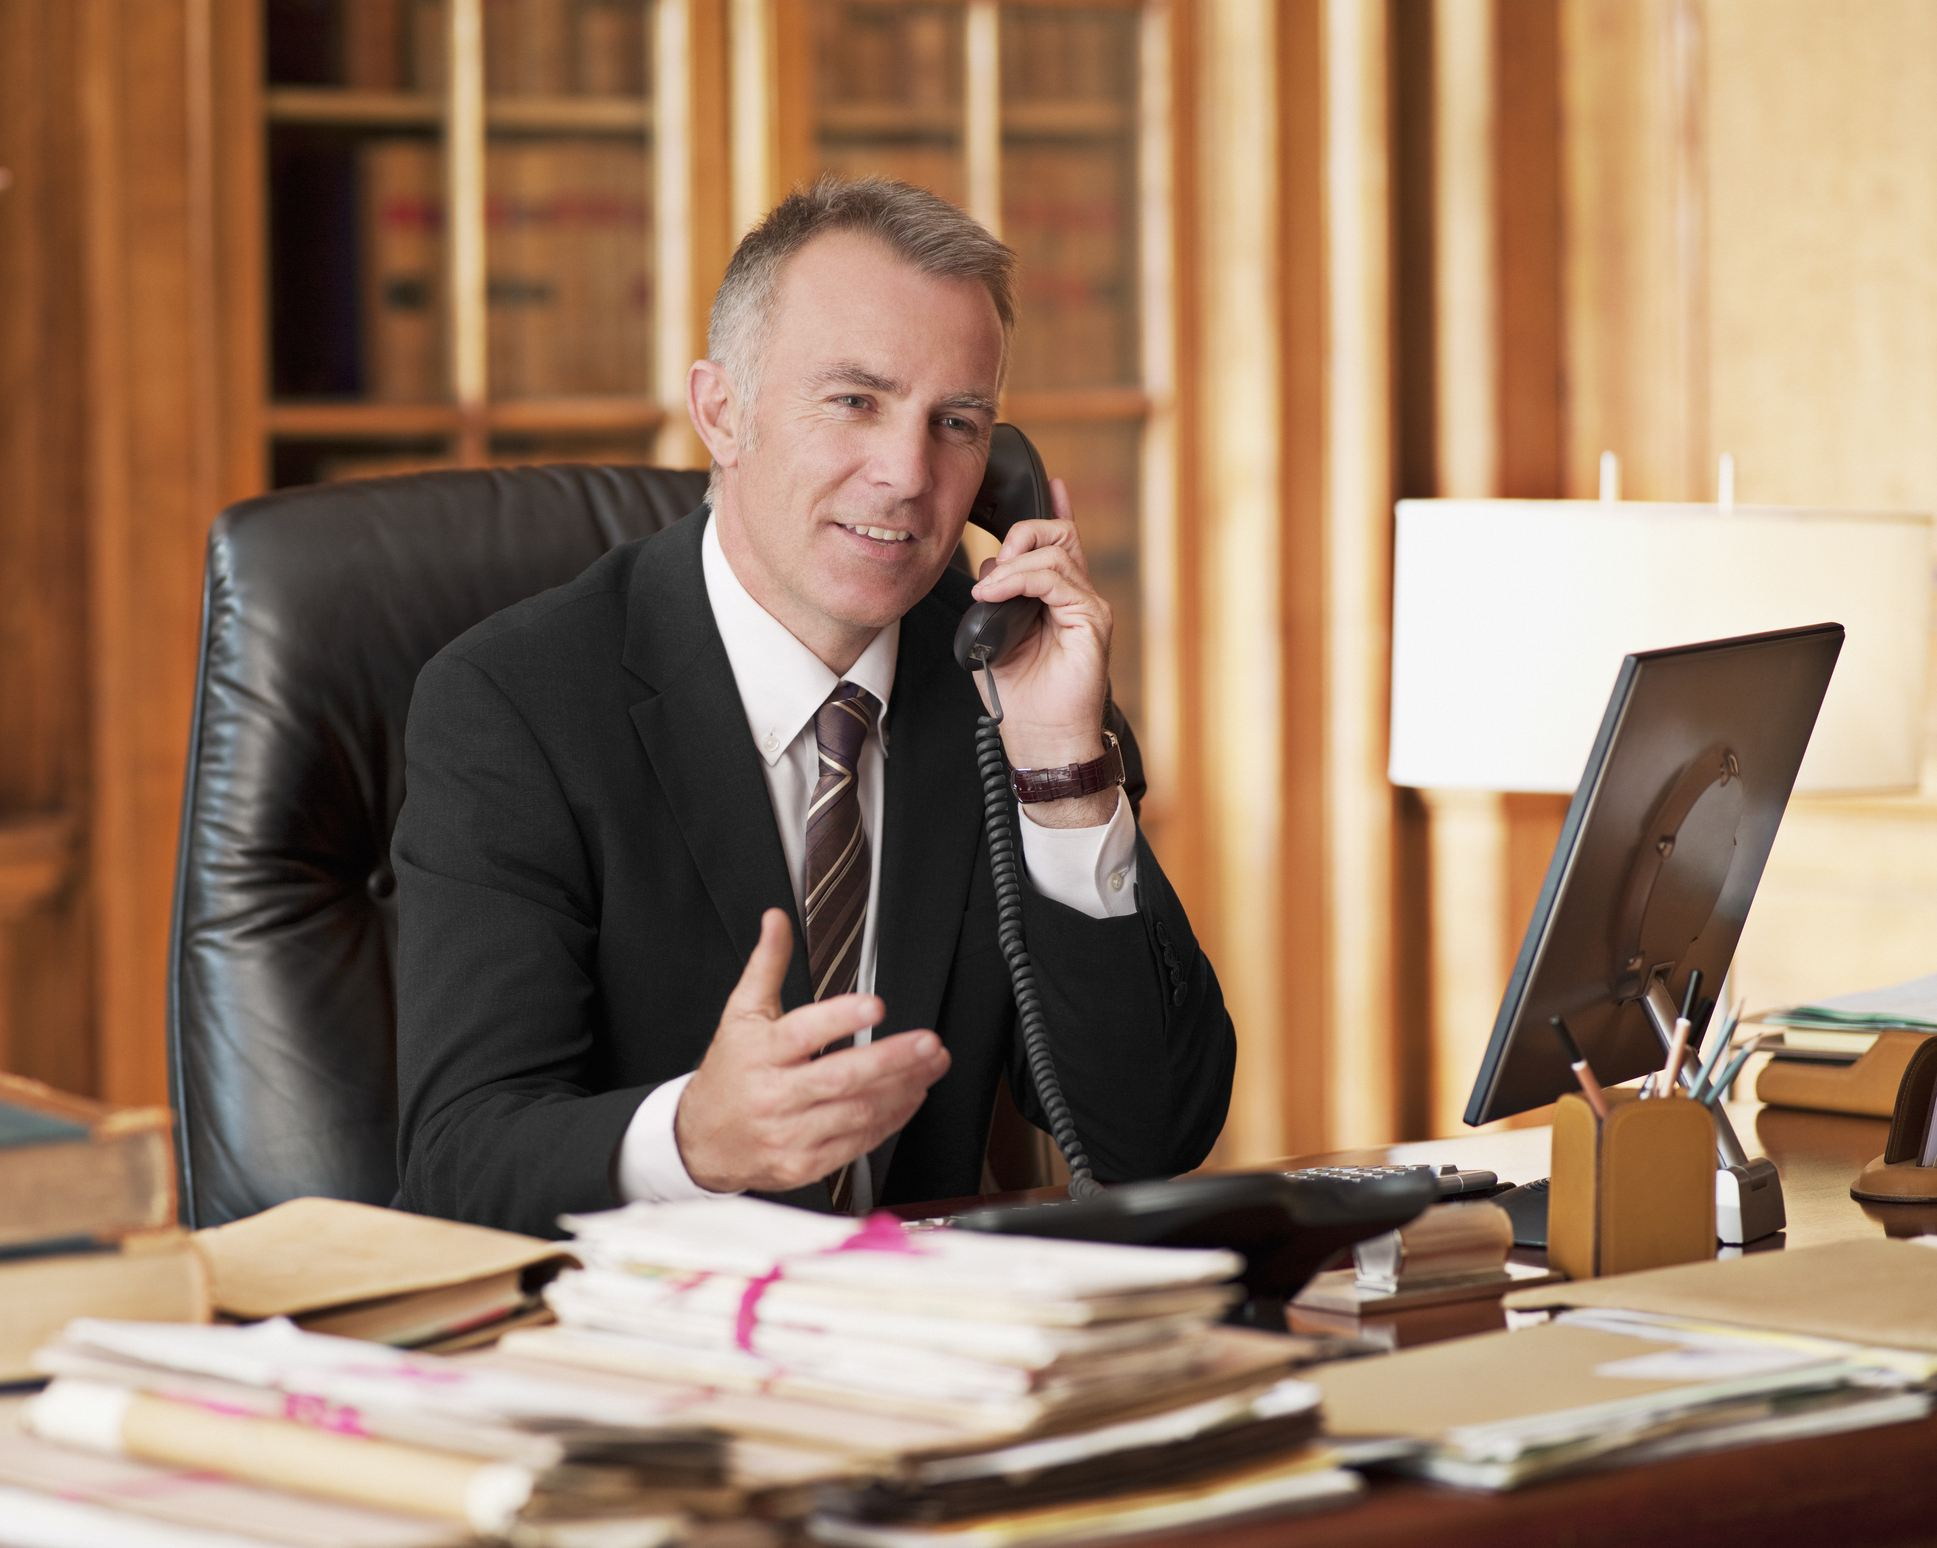 Lawyer on the phone